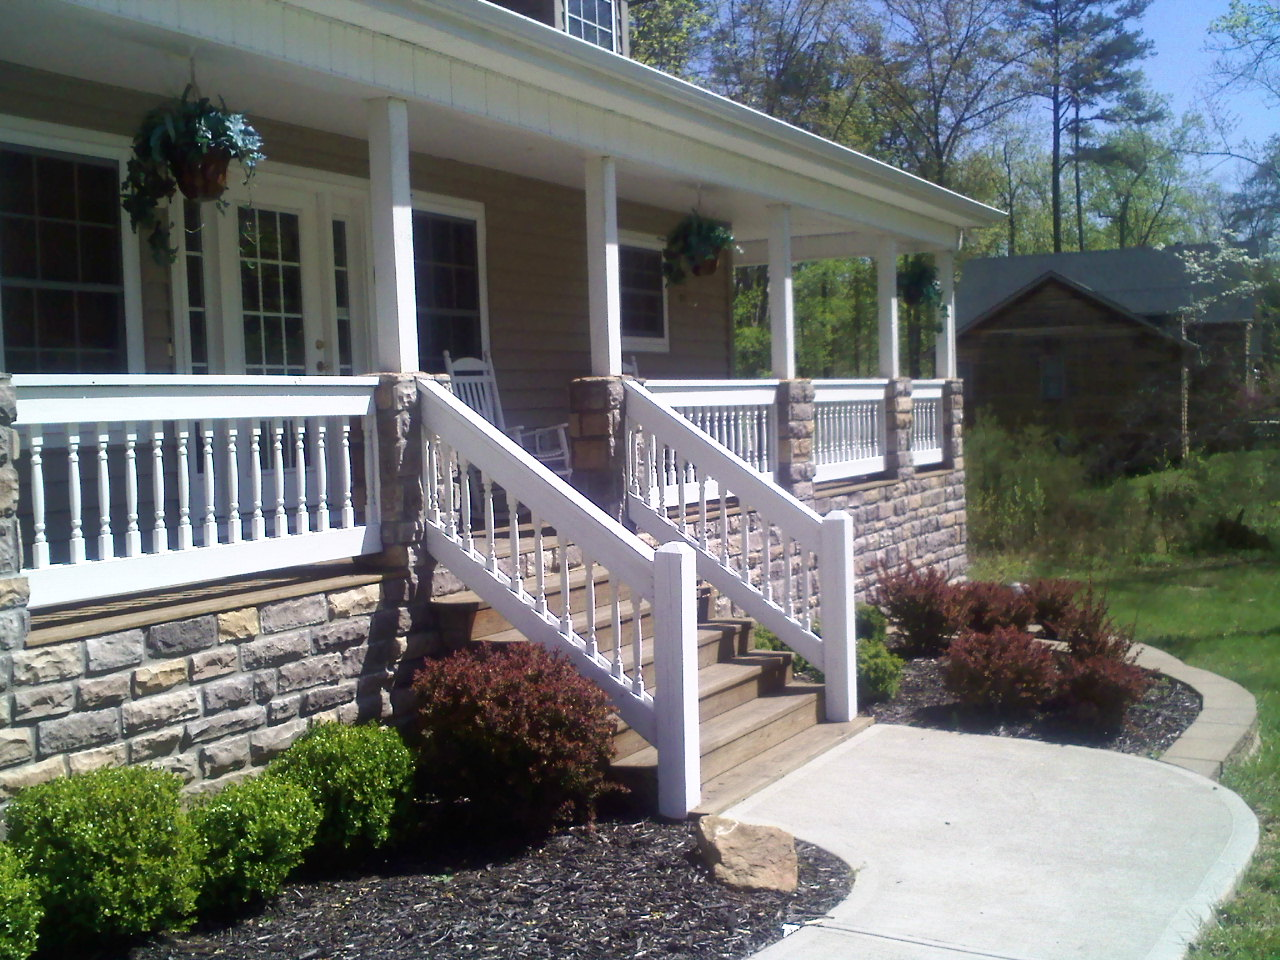 Hadley son painting maineville ohio house painting What is the best exterior paint for decks